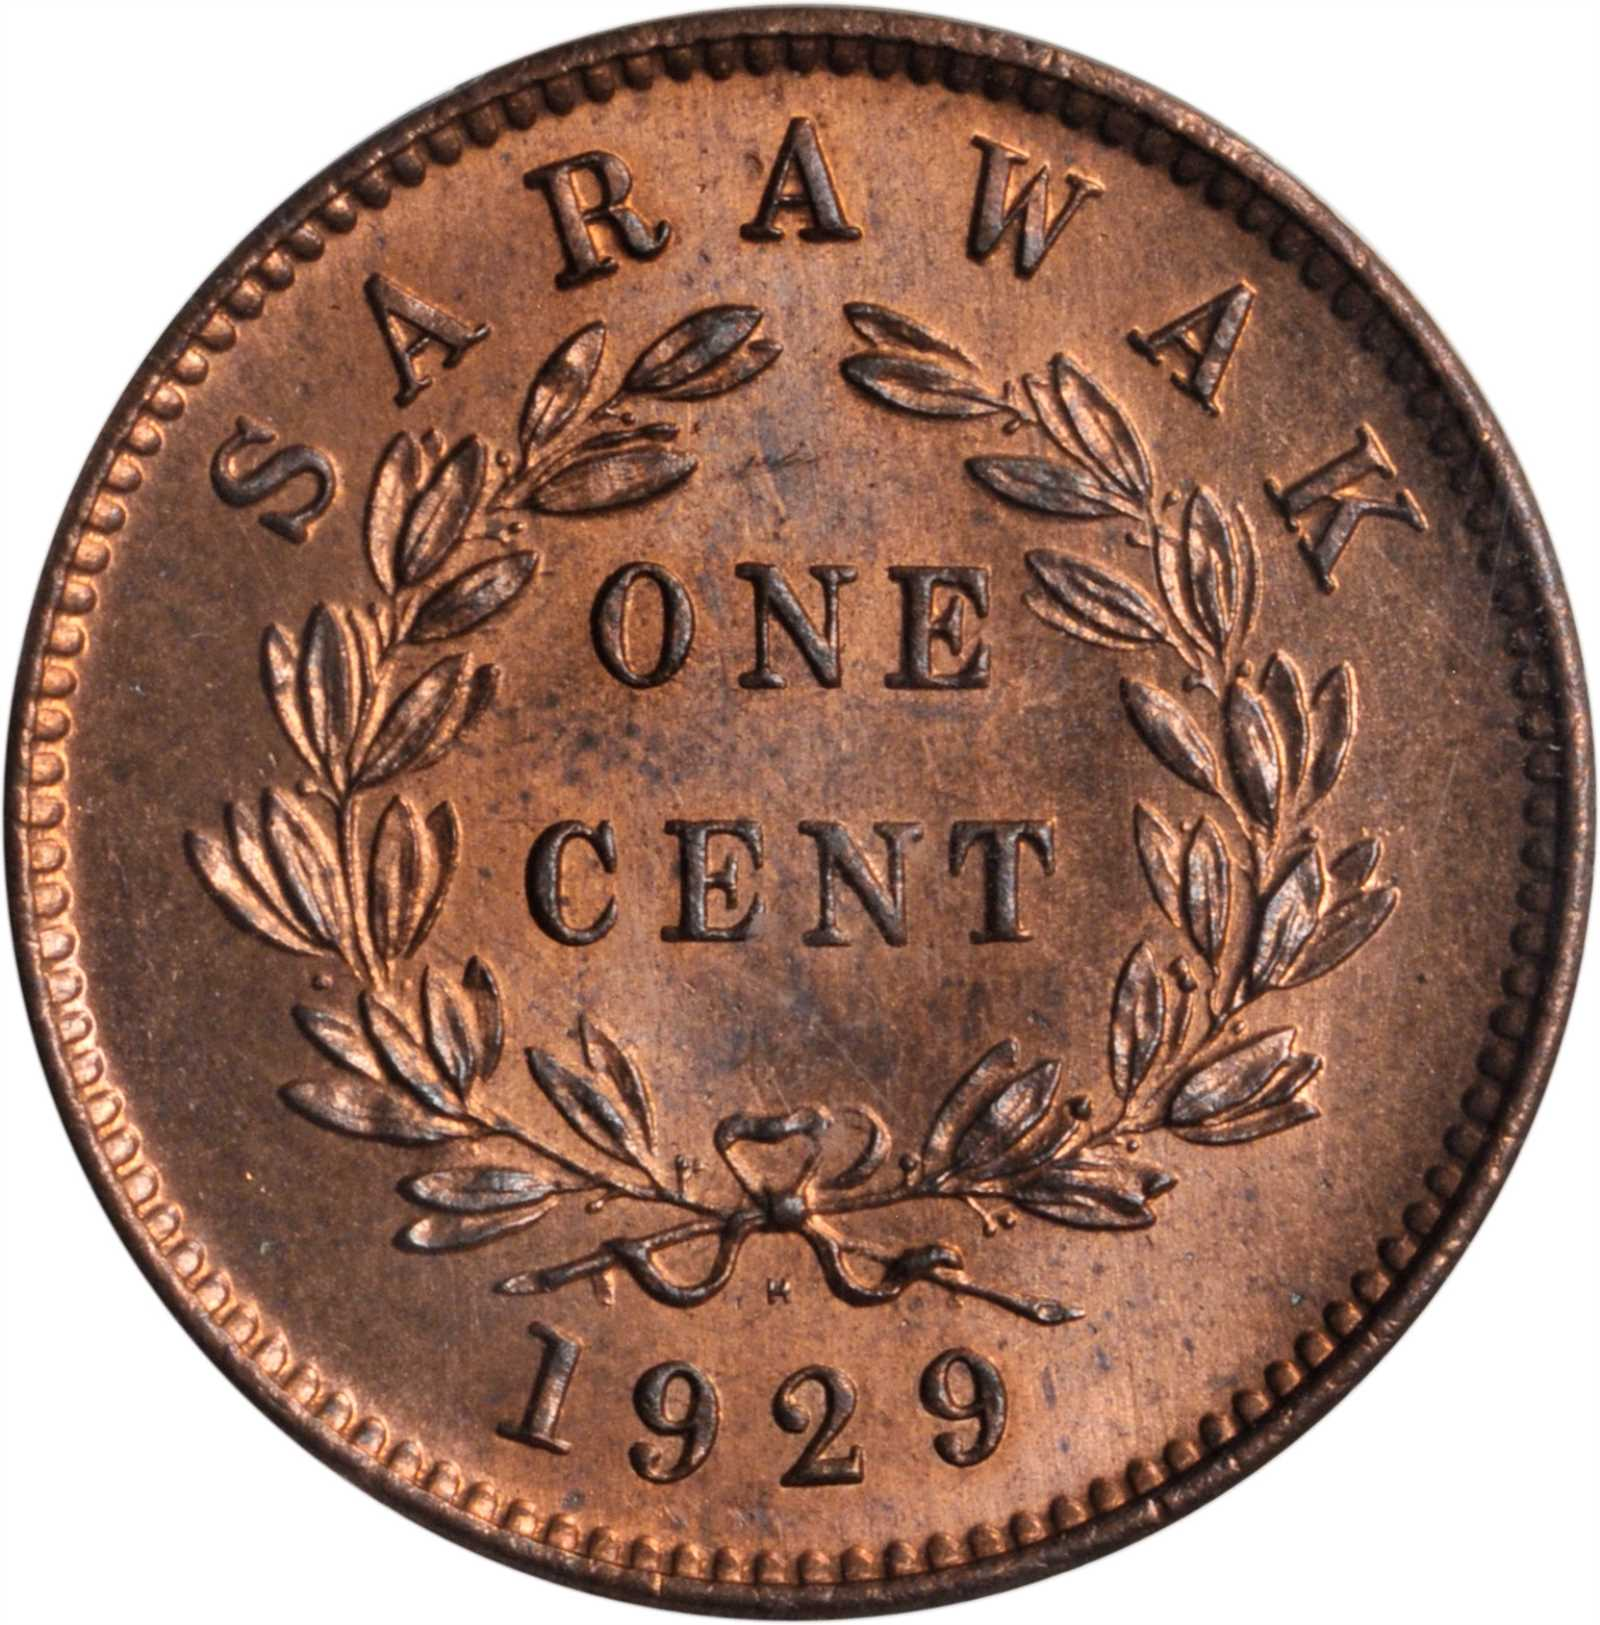 One Cent: Photo Sarawak 1929-H cent